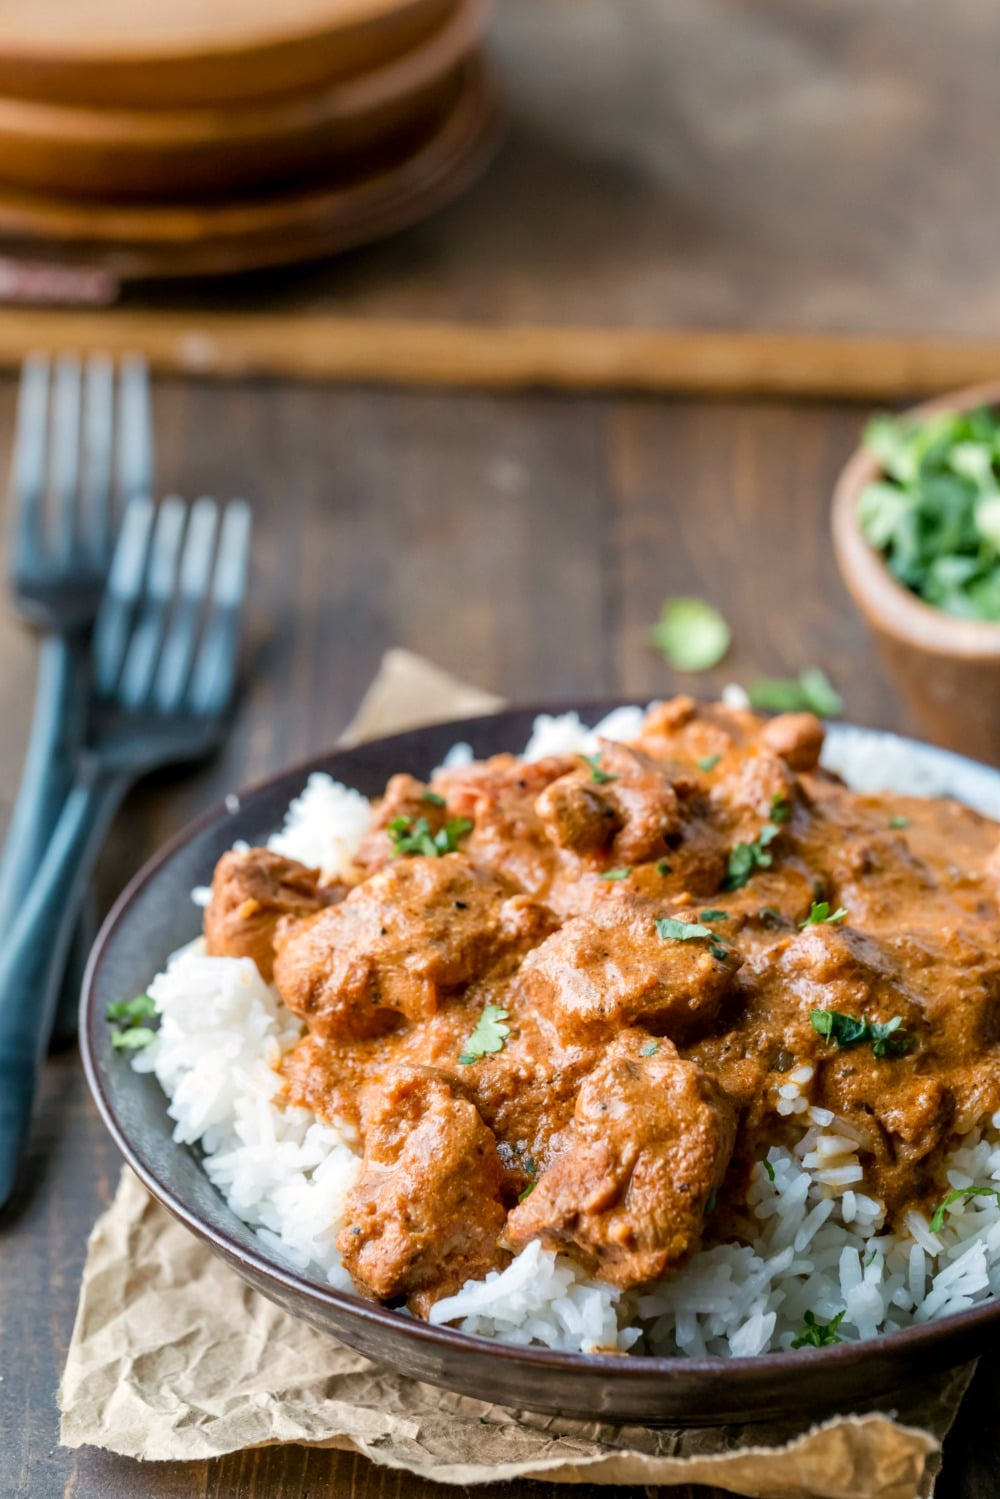 Indian Butter Chicken over rice in a dark brown dish